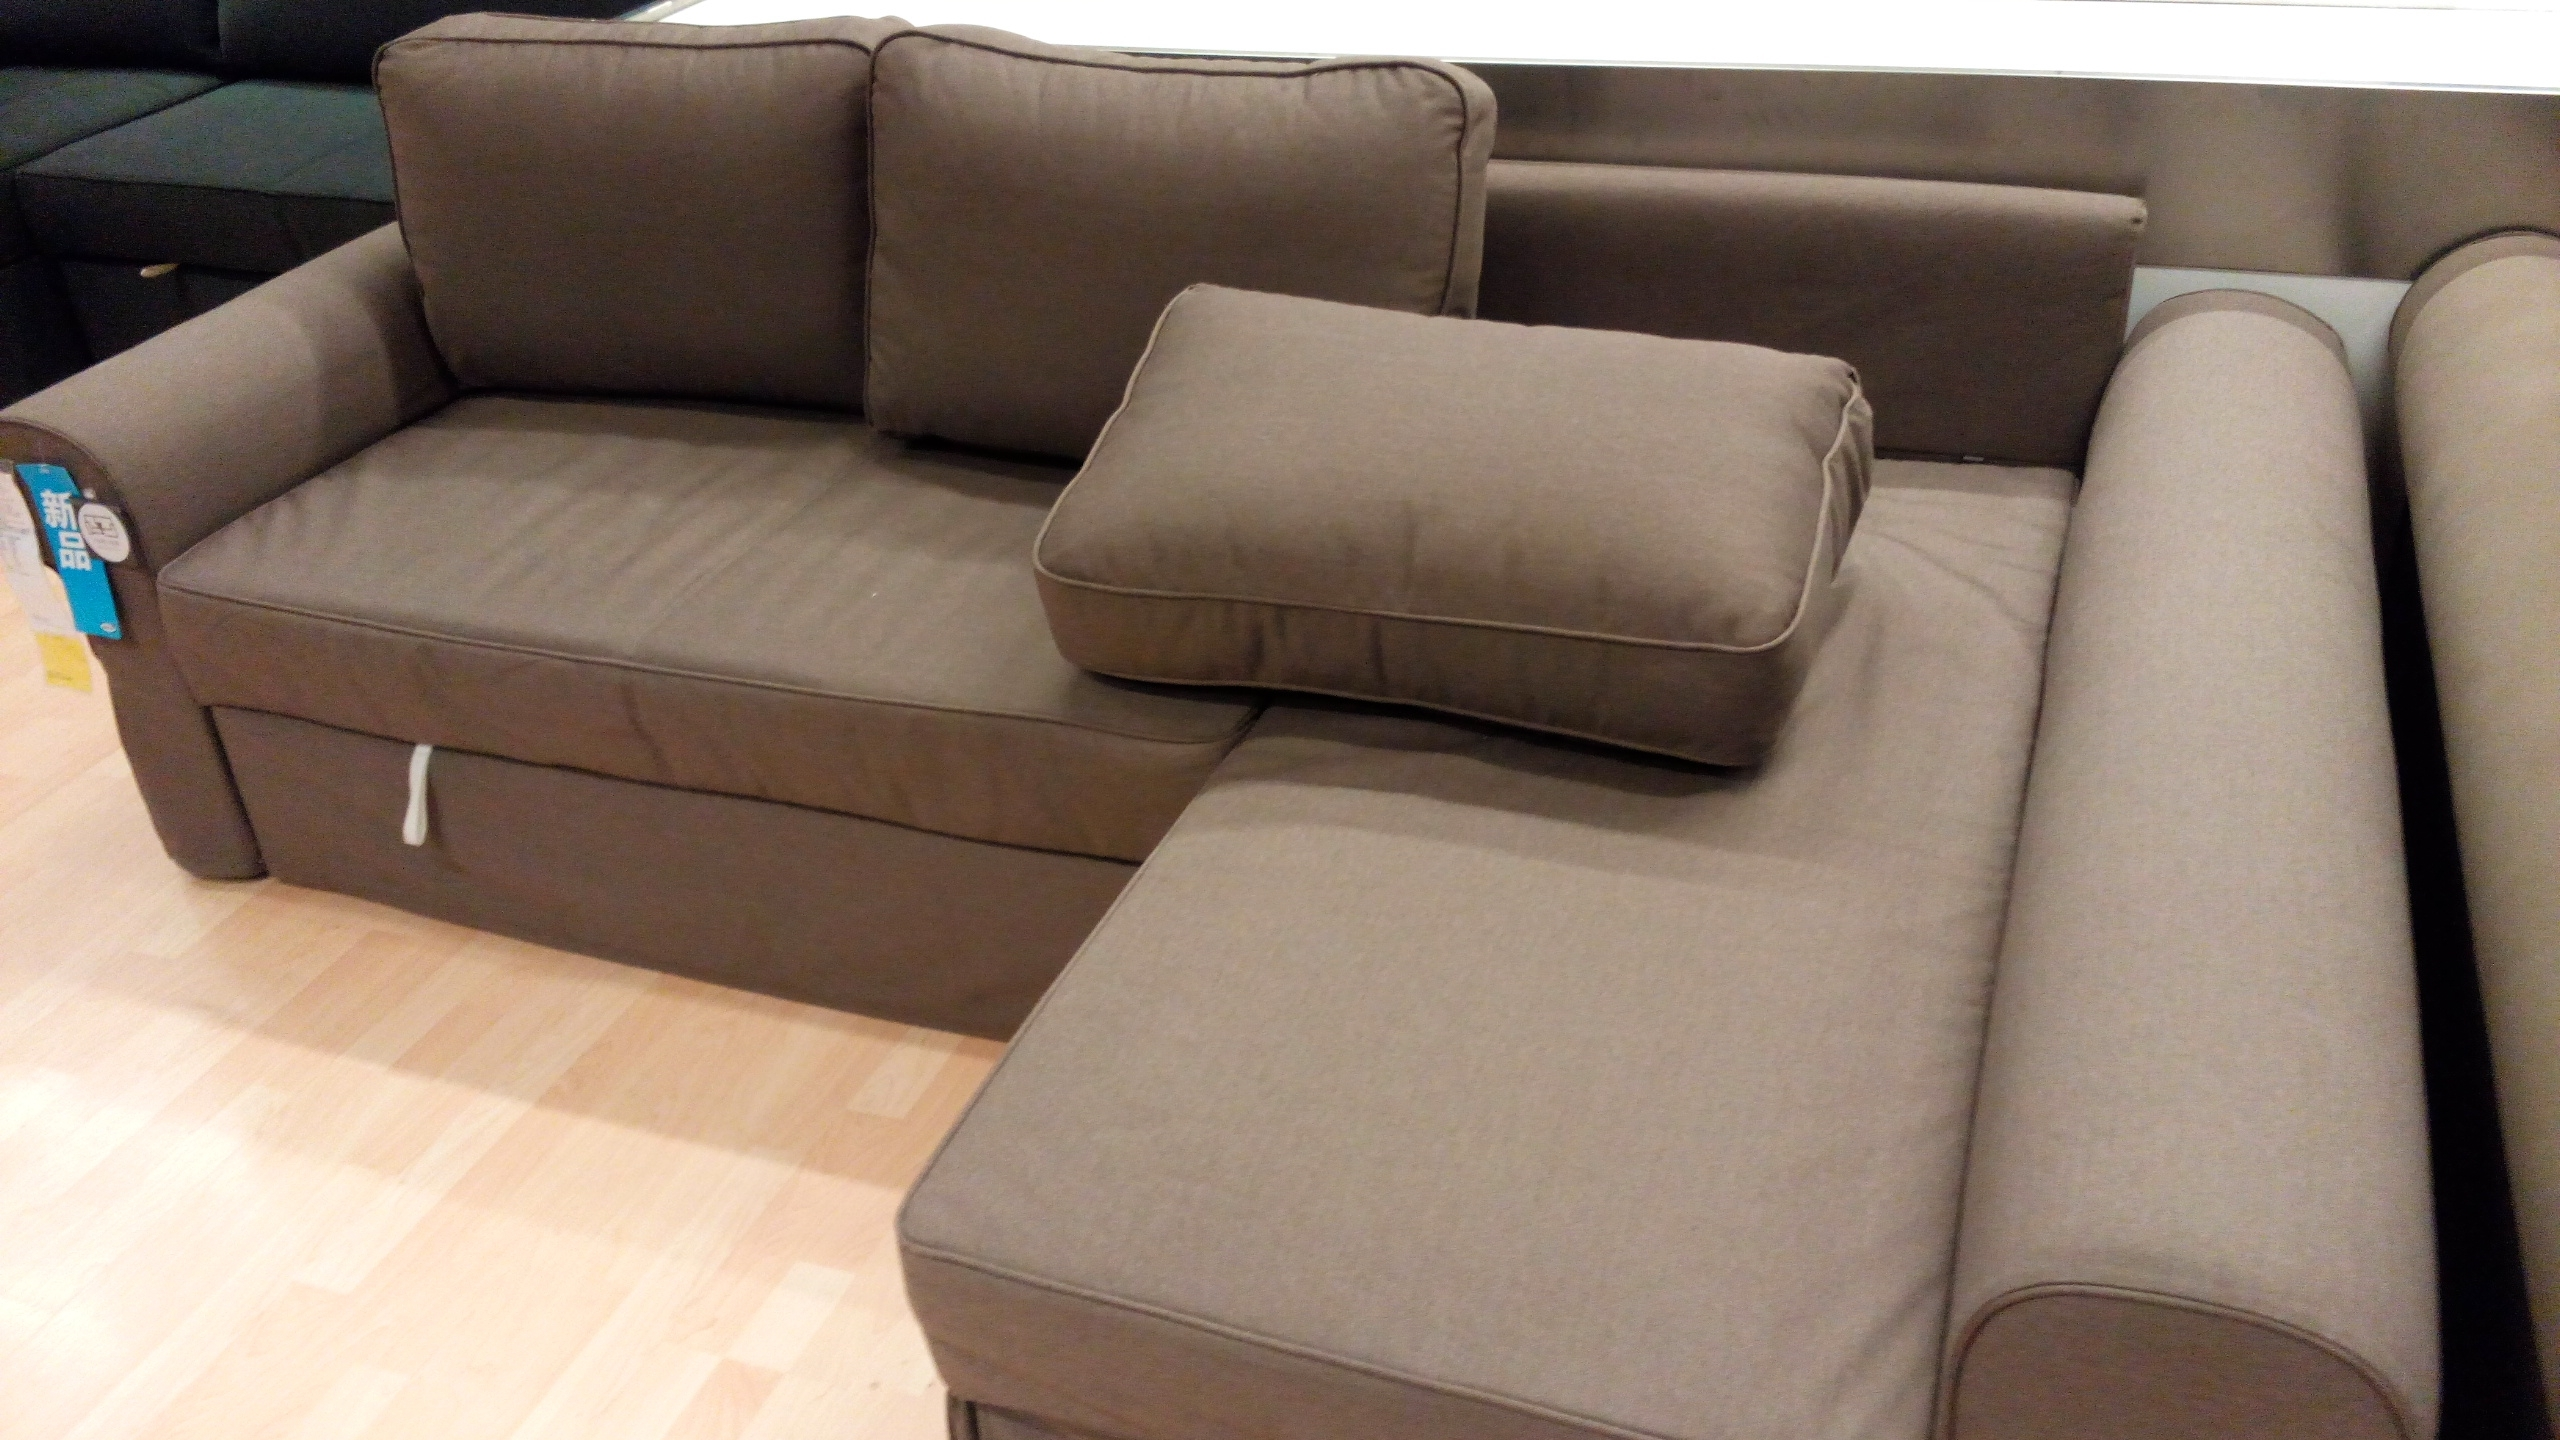 Lovely Manstad Sectional Sofa Bed Storage From Ikea 94 In Big Sofas With Manstad Sofas (Image 8 of 10)